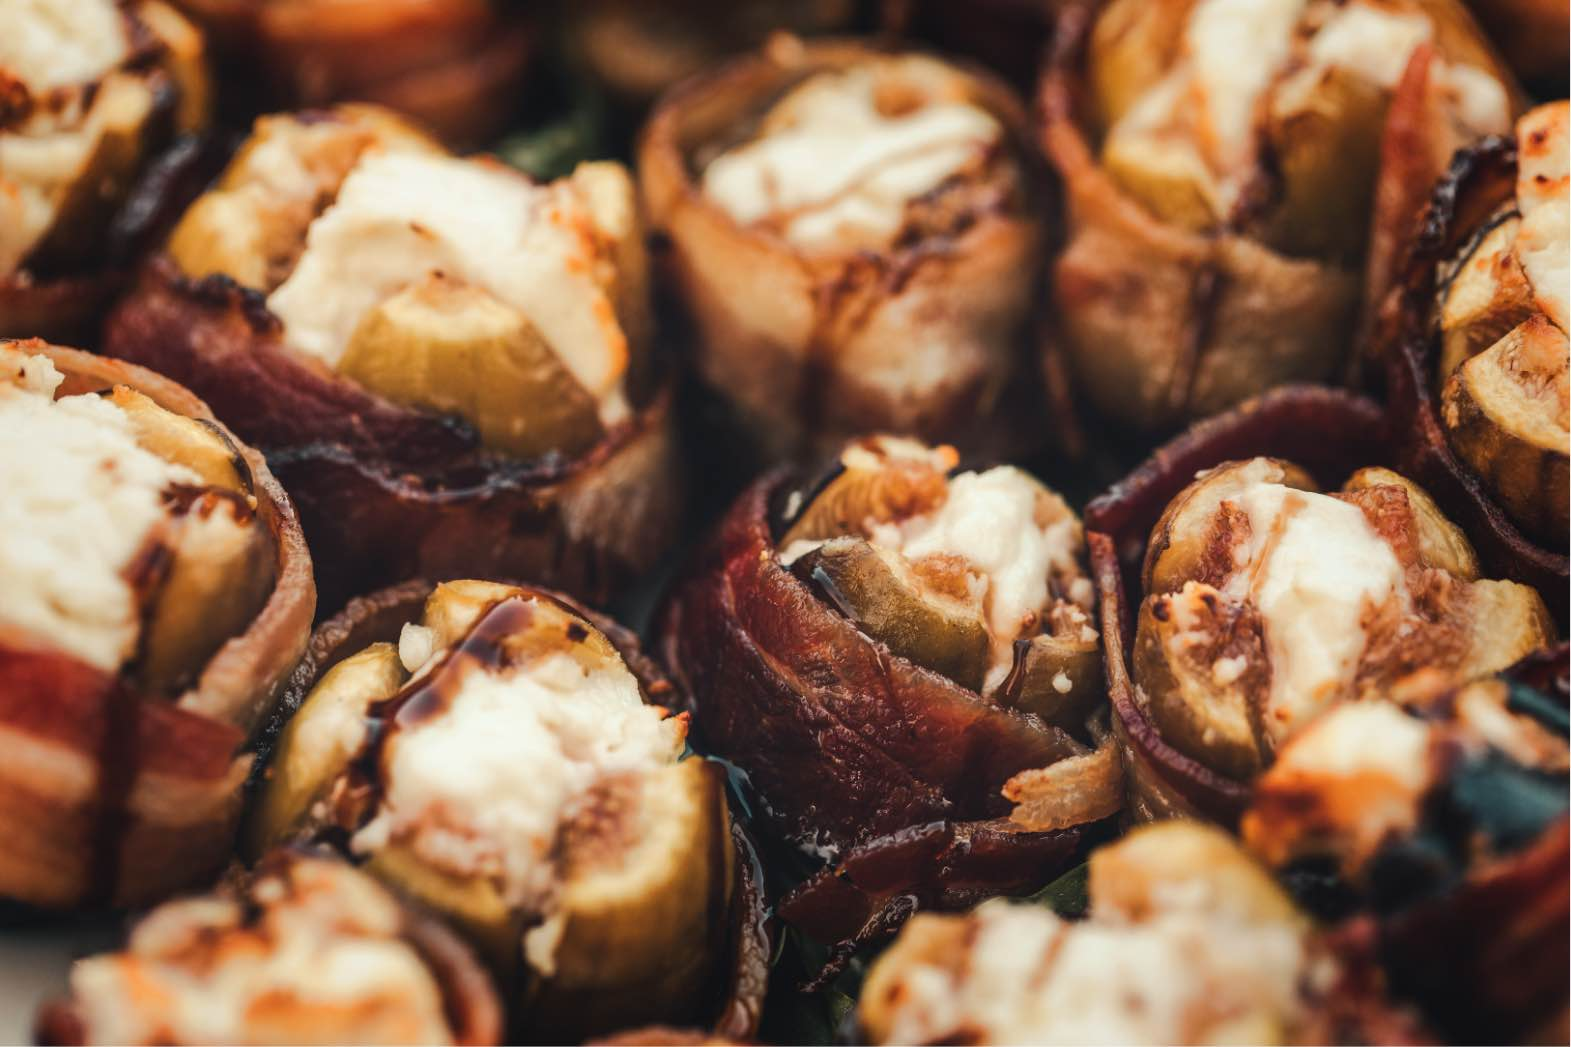 Grilled bacon-wrapped stuffed figs at the Alisal Guest Ranch & Resort